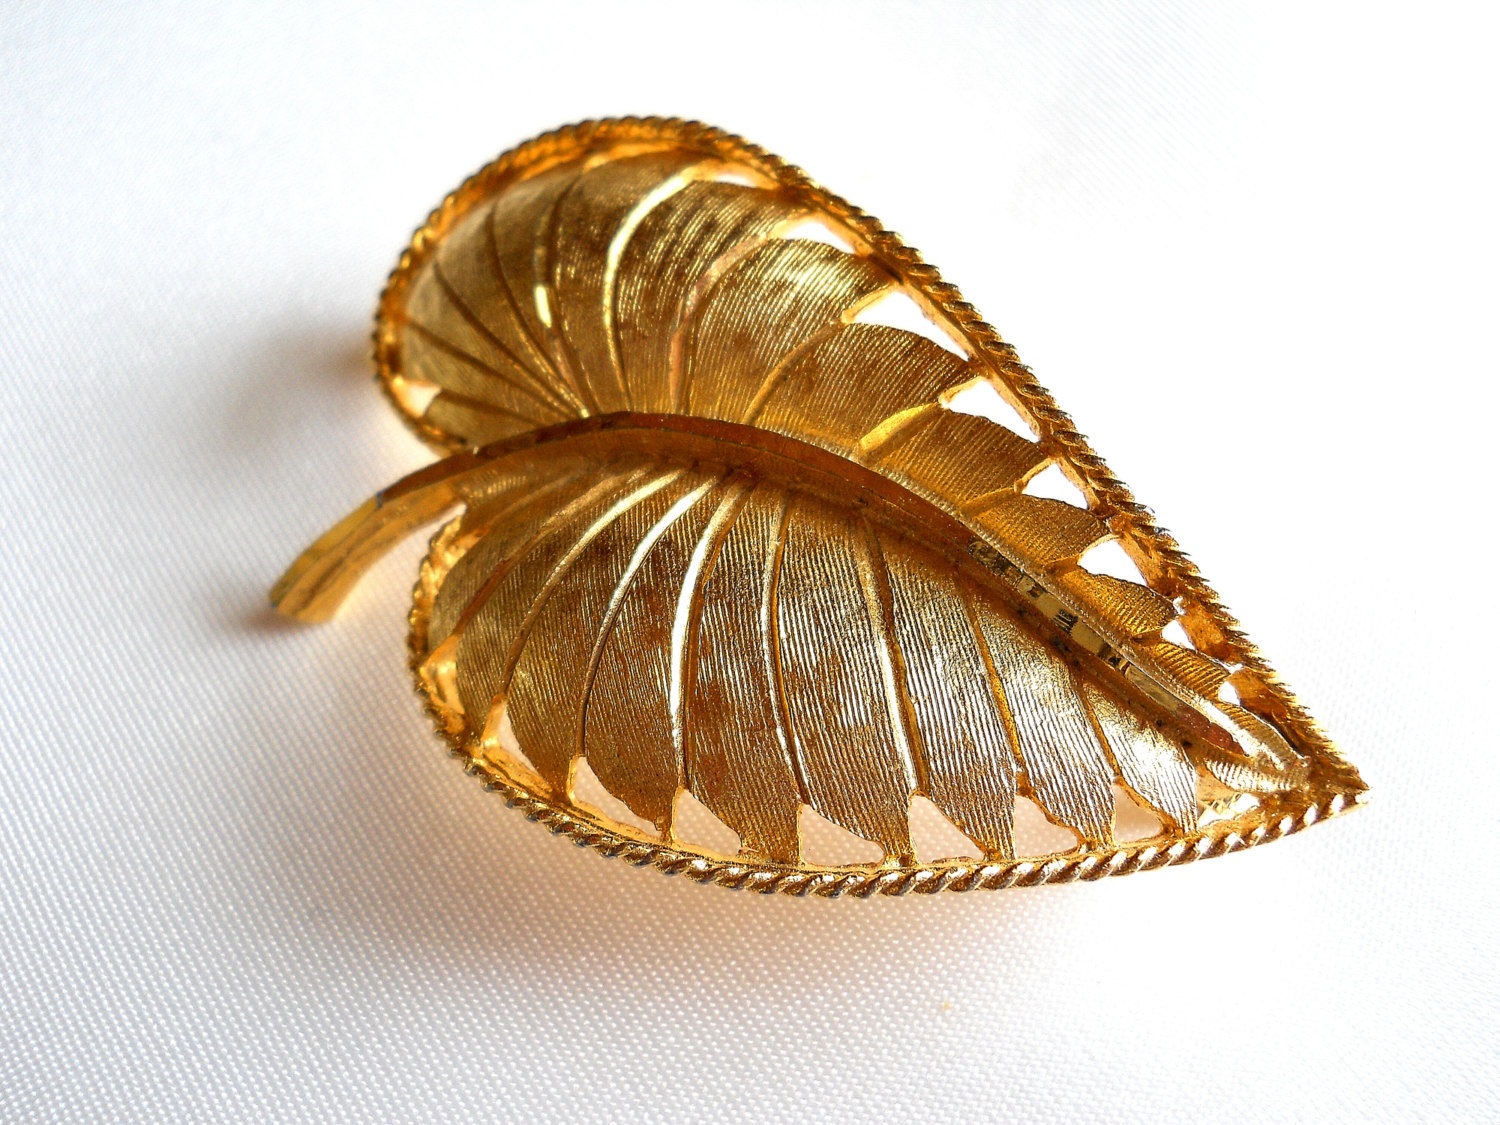 Signed BSK Textured Gold Tone Leaf Brooch Pin Vintage image 2